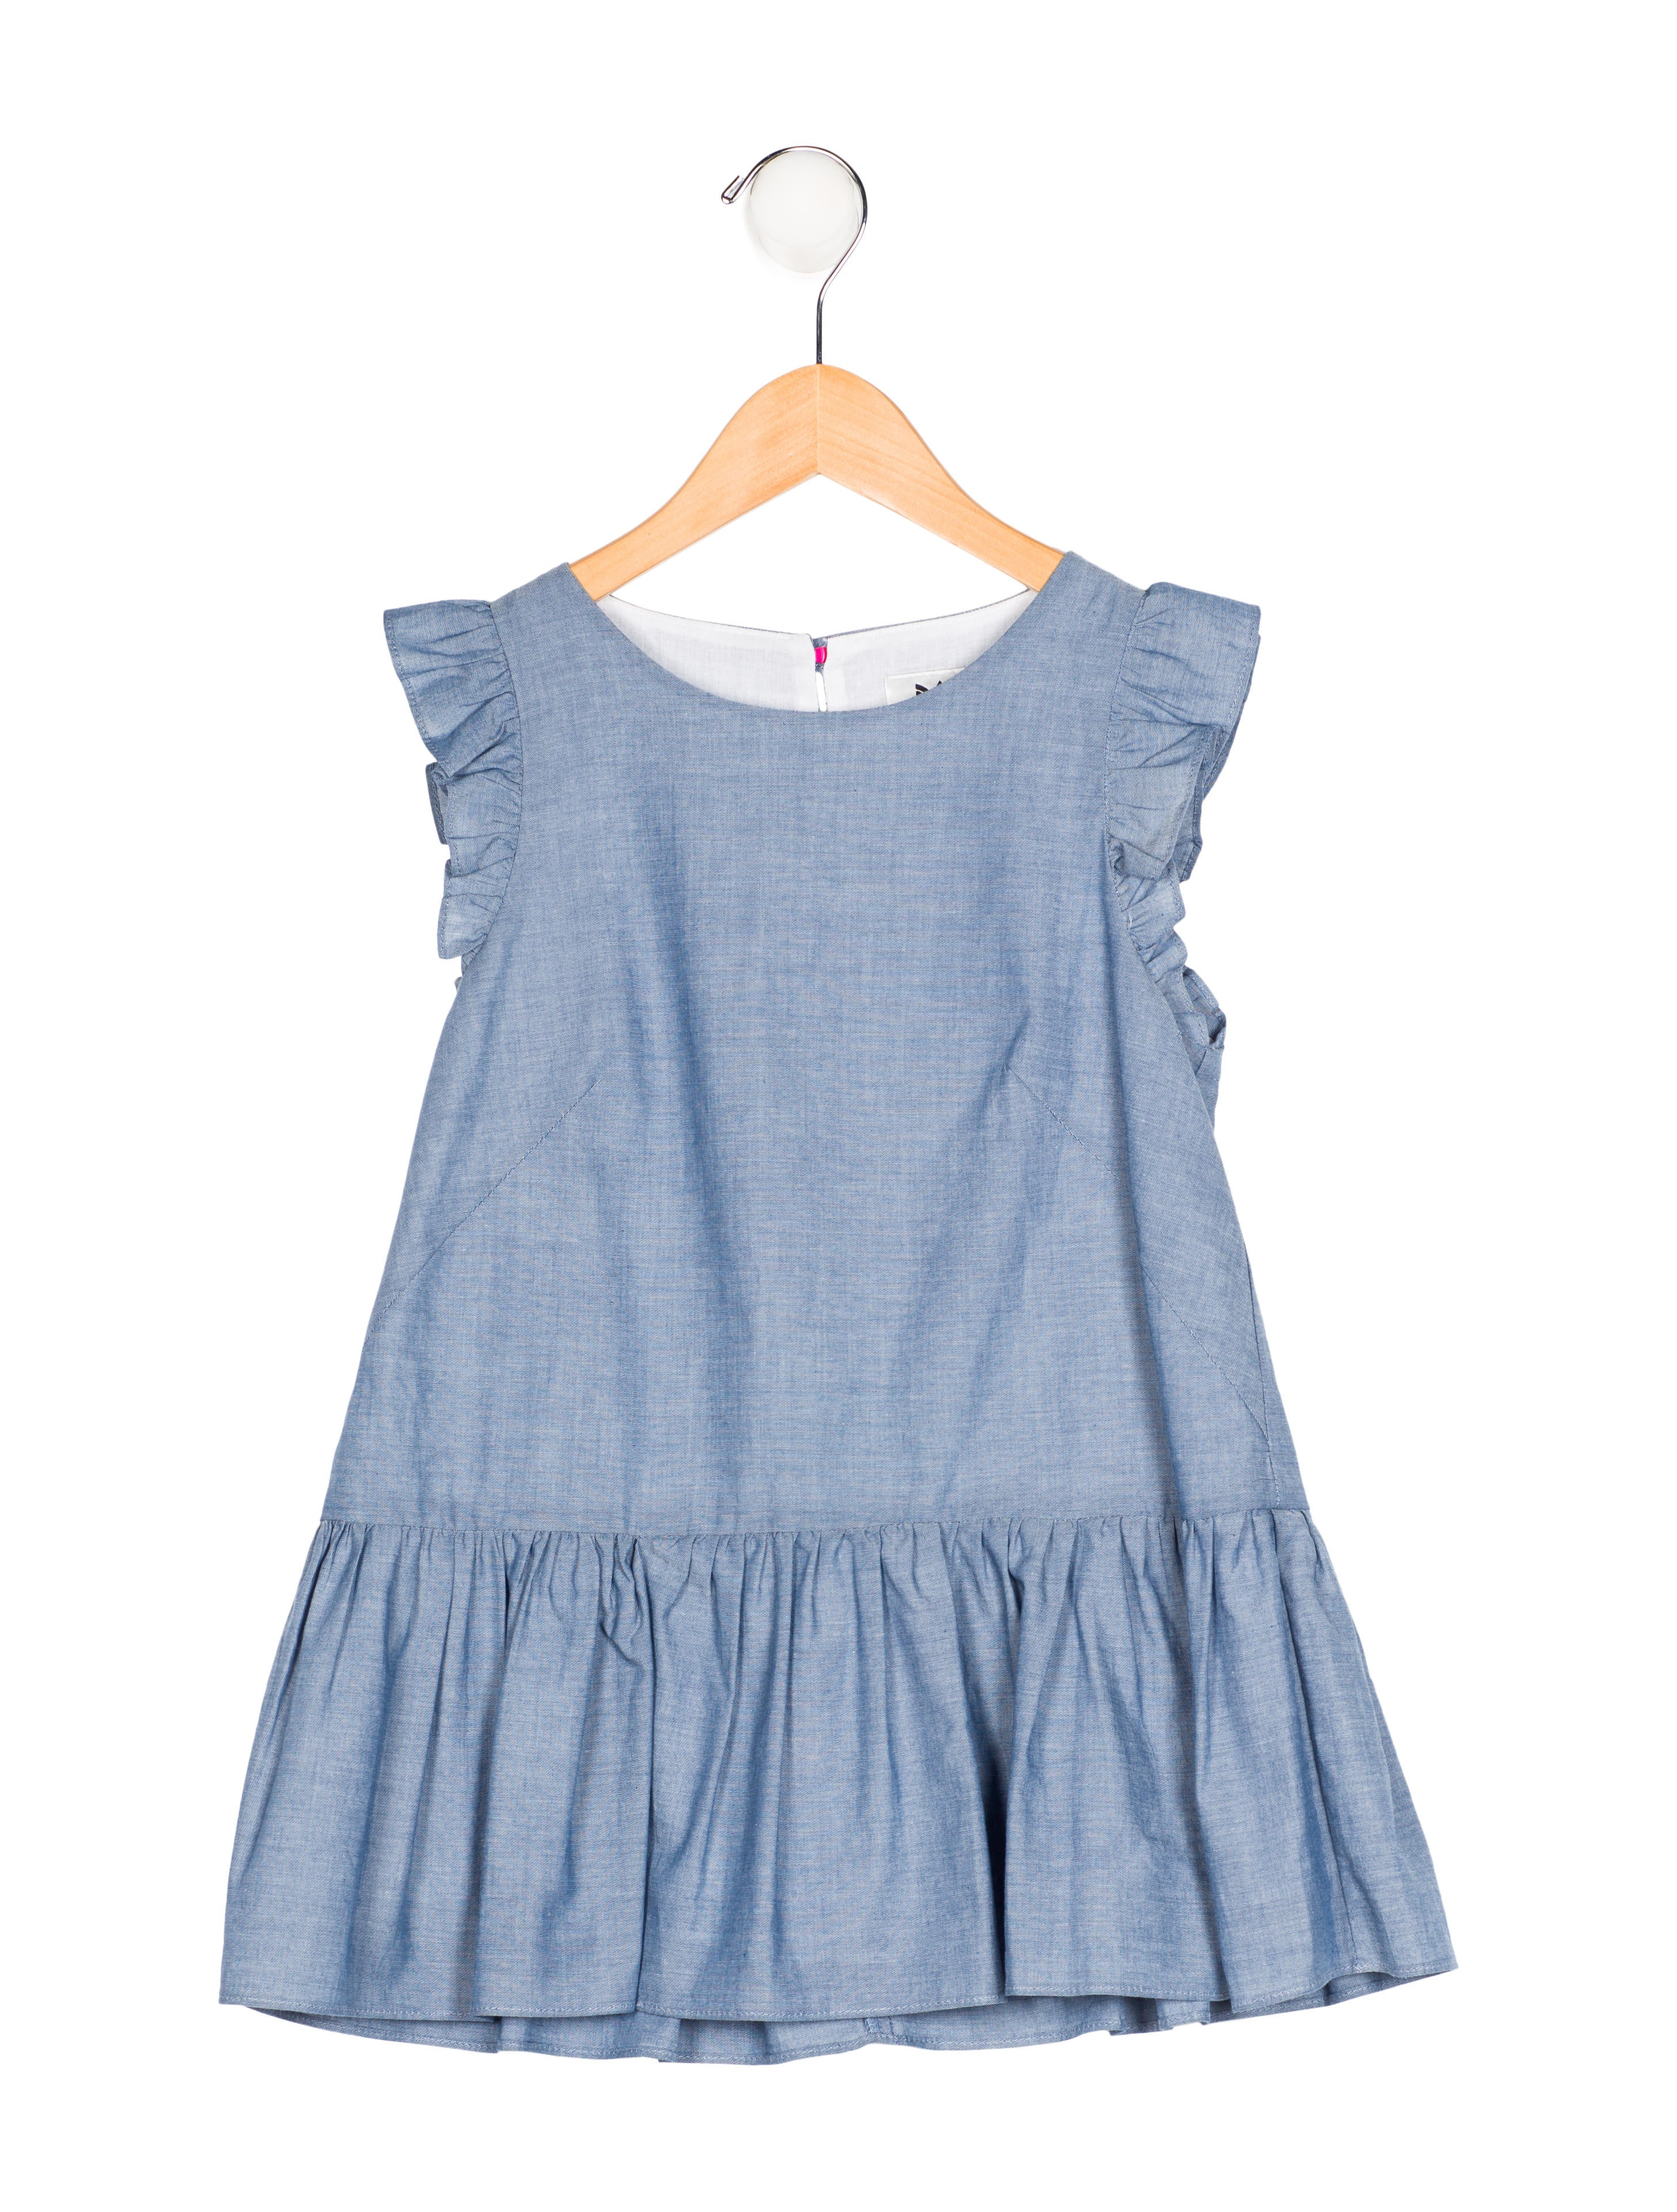 Shop Old Navy for its chic peplum tops that exude alluring flair and make a fashion-forward statement. Stylish Modern Tops that Make the Ultra-Feminine Statement. Our on-trend peplum tops are the defining feminine fit-and-flare silhouette of the season.